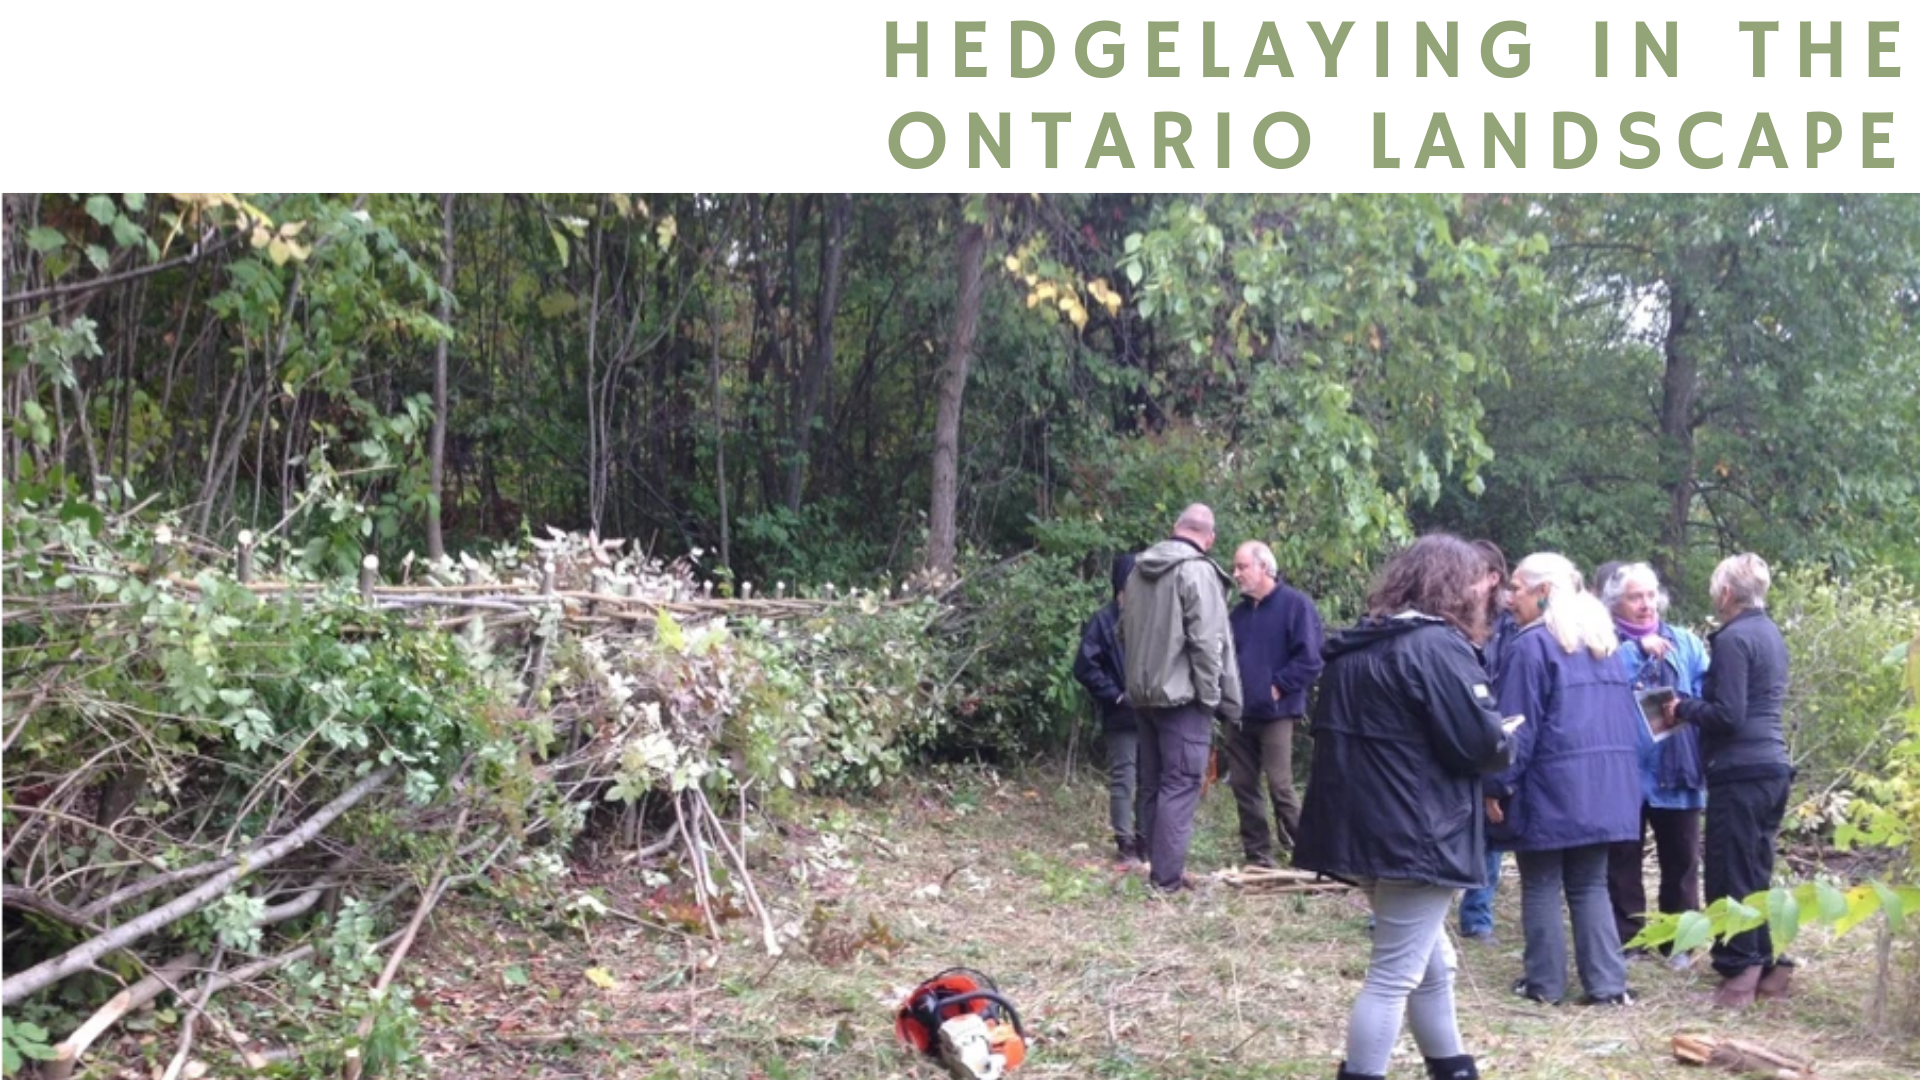 Hedgelaying in the Ontario Landscape